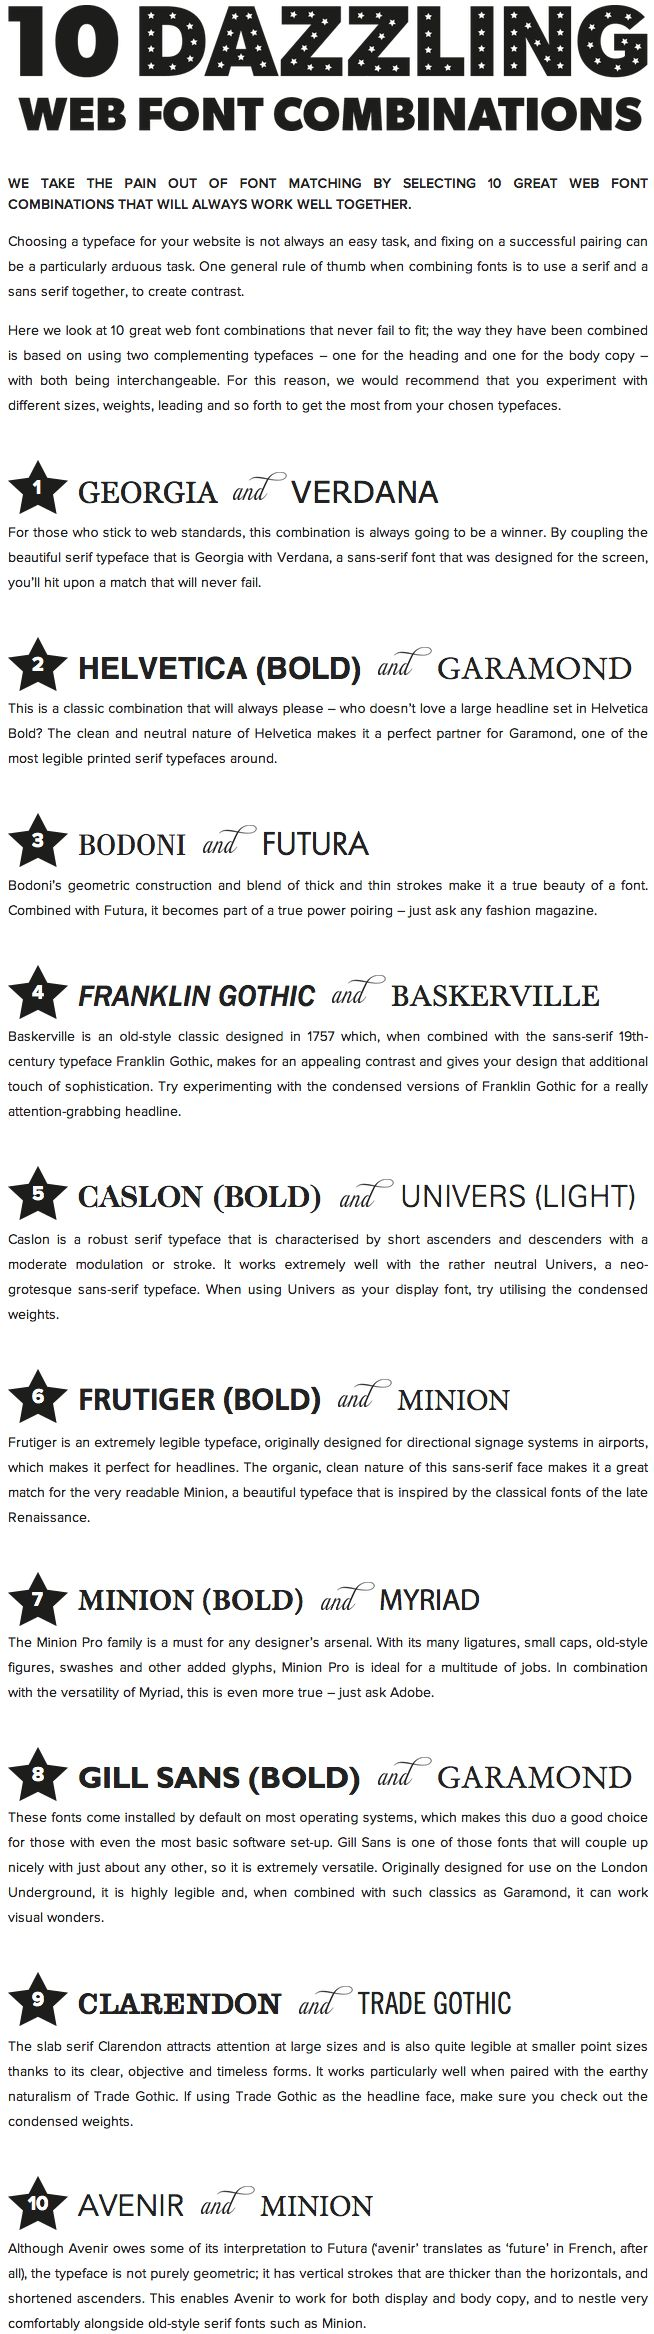 10 Great Web Font Combinations...I like Clarendon and Trade Gothic together (No. 9). IN123